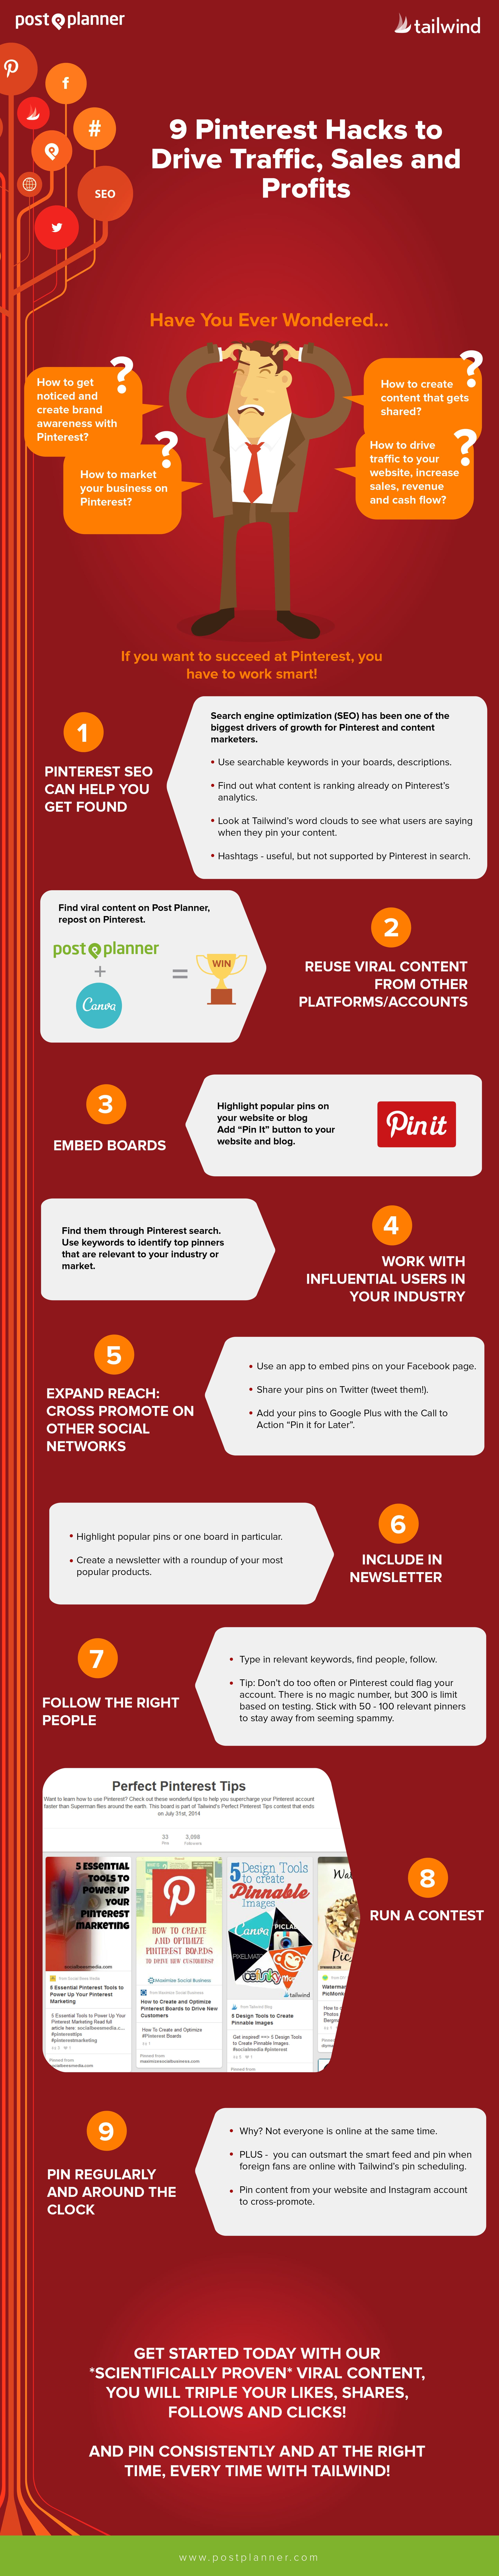 Pinterest Hacks to drive traffic, sales, profits (infographic)